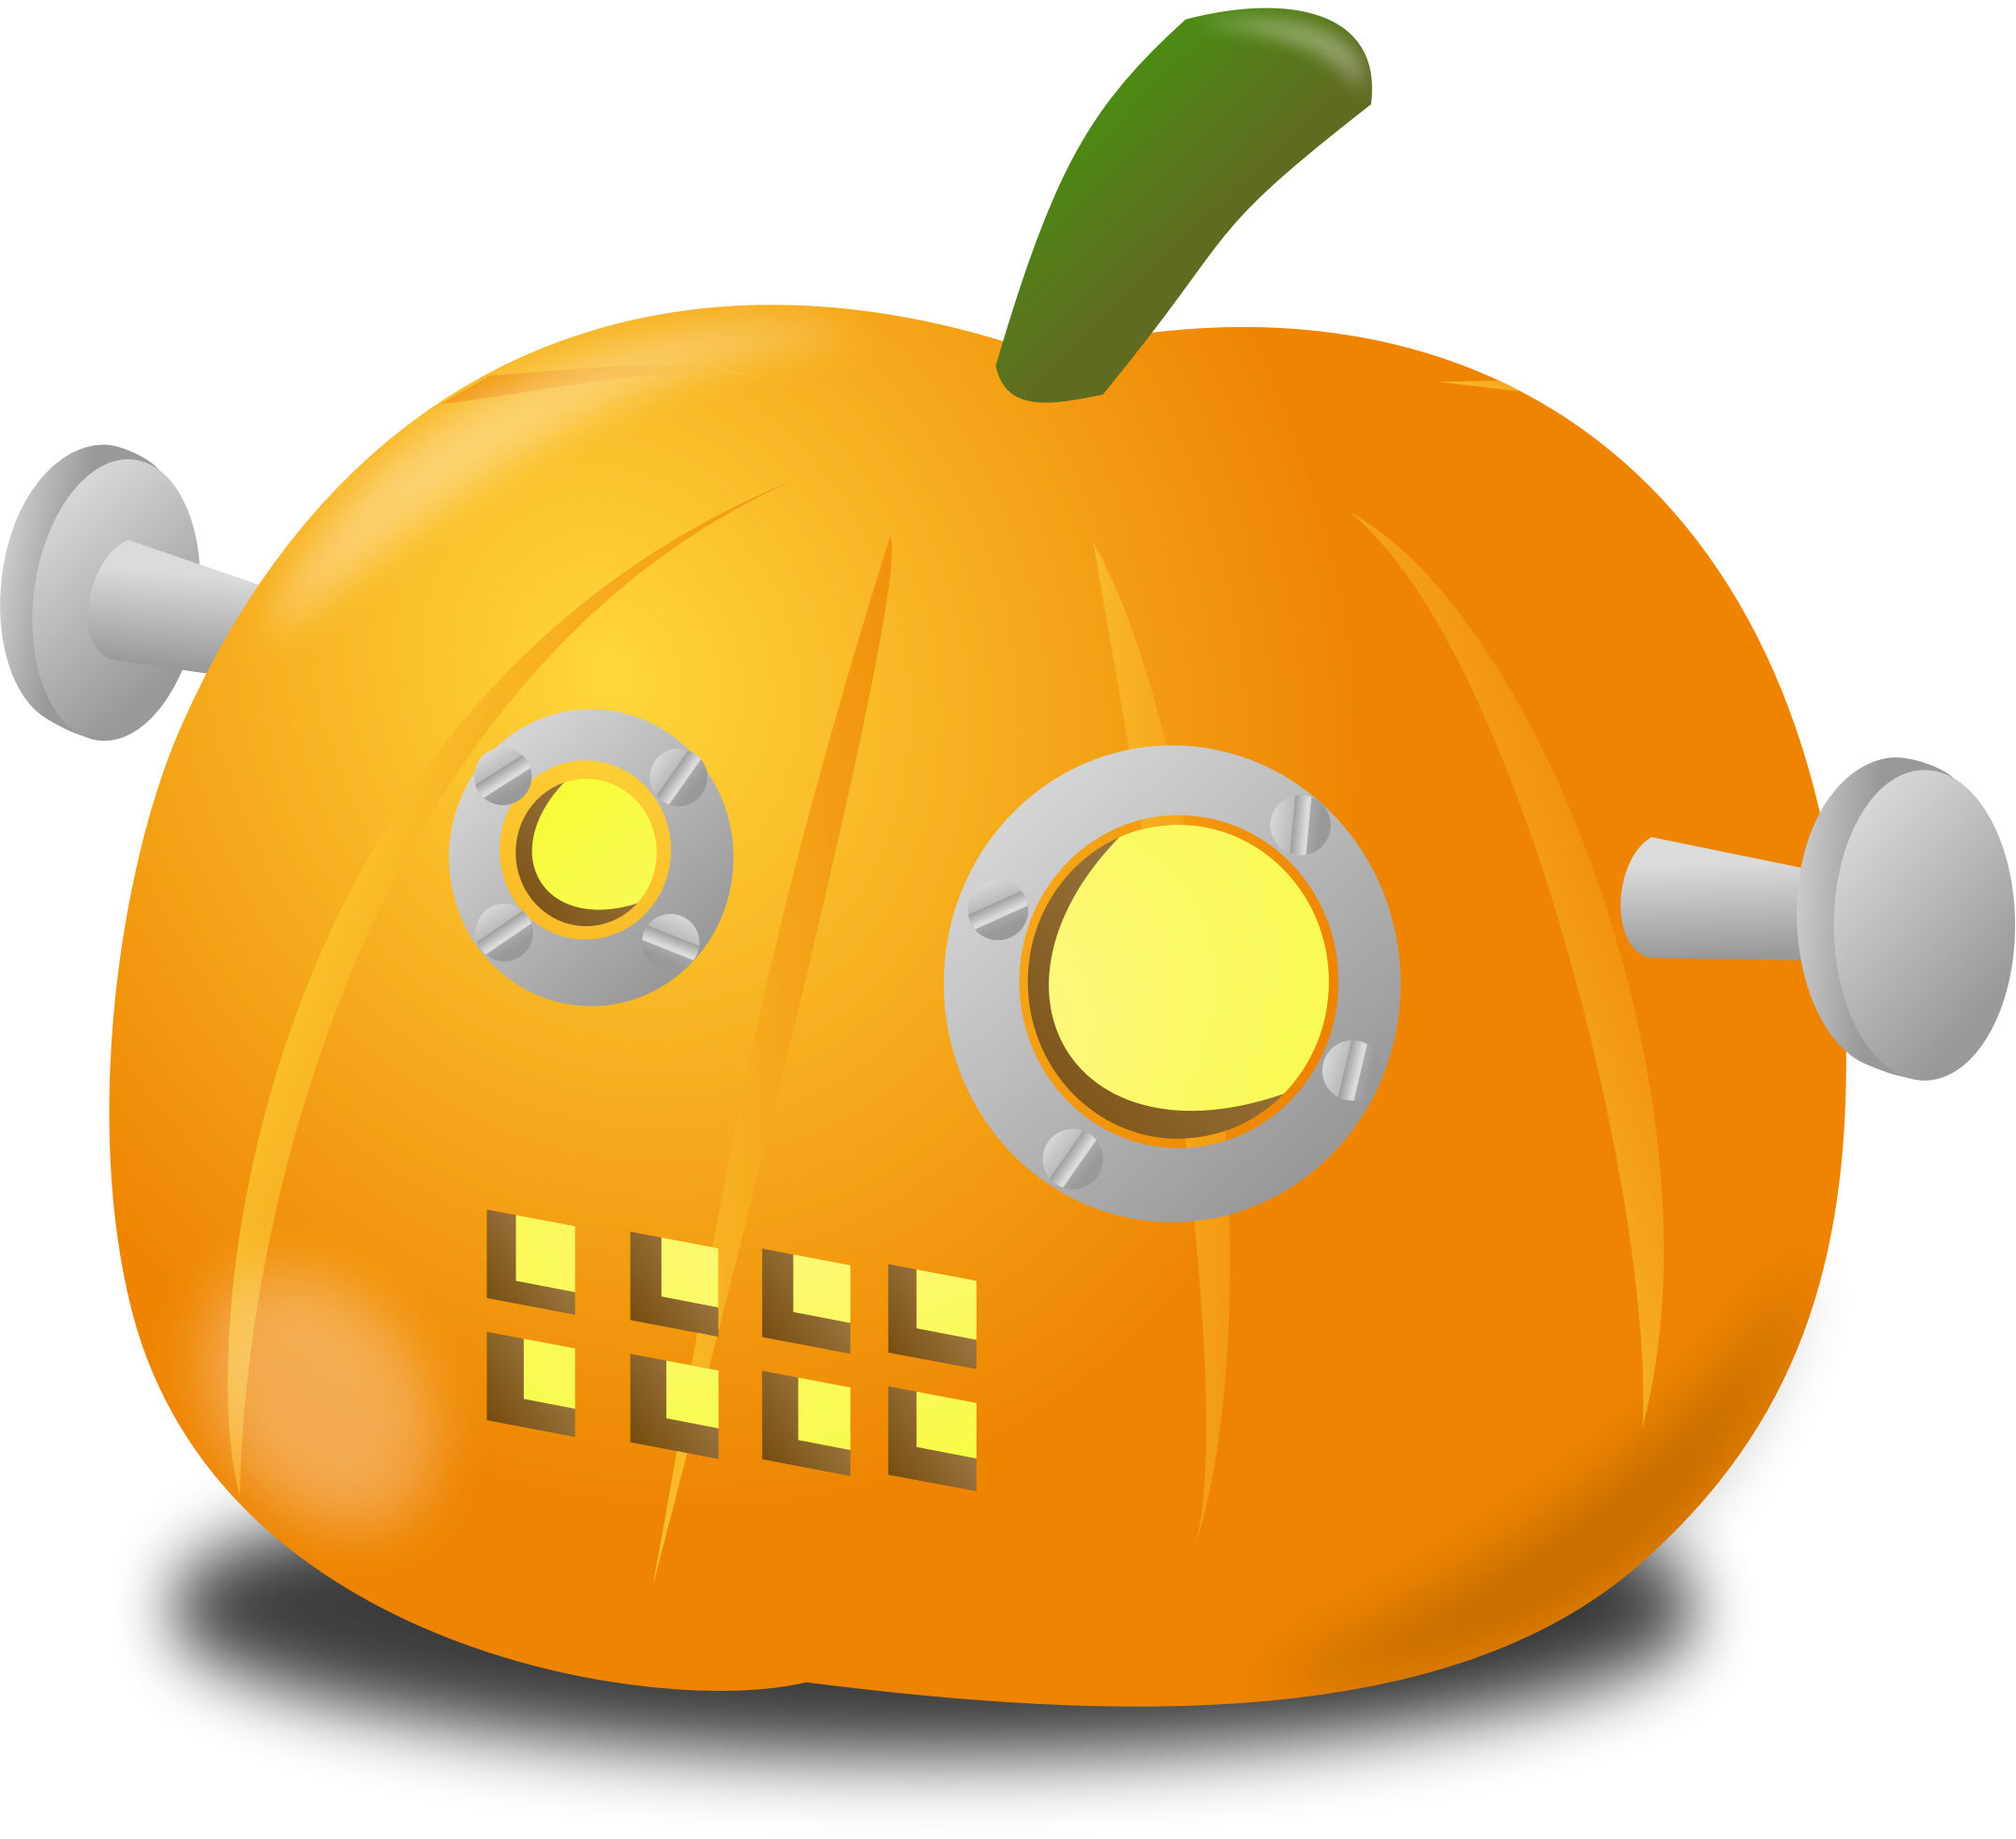 Multiple pumpkin clipart black white picture freeuse library Clipart - Robot pumpkin picture freeuse library